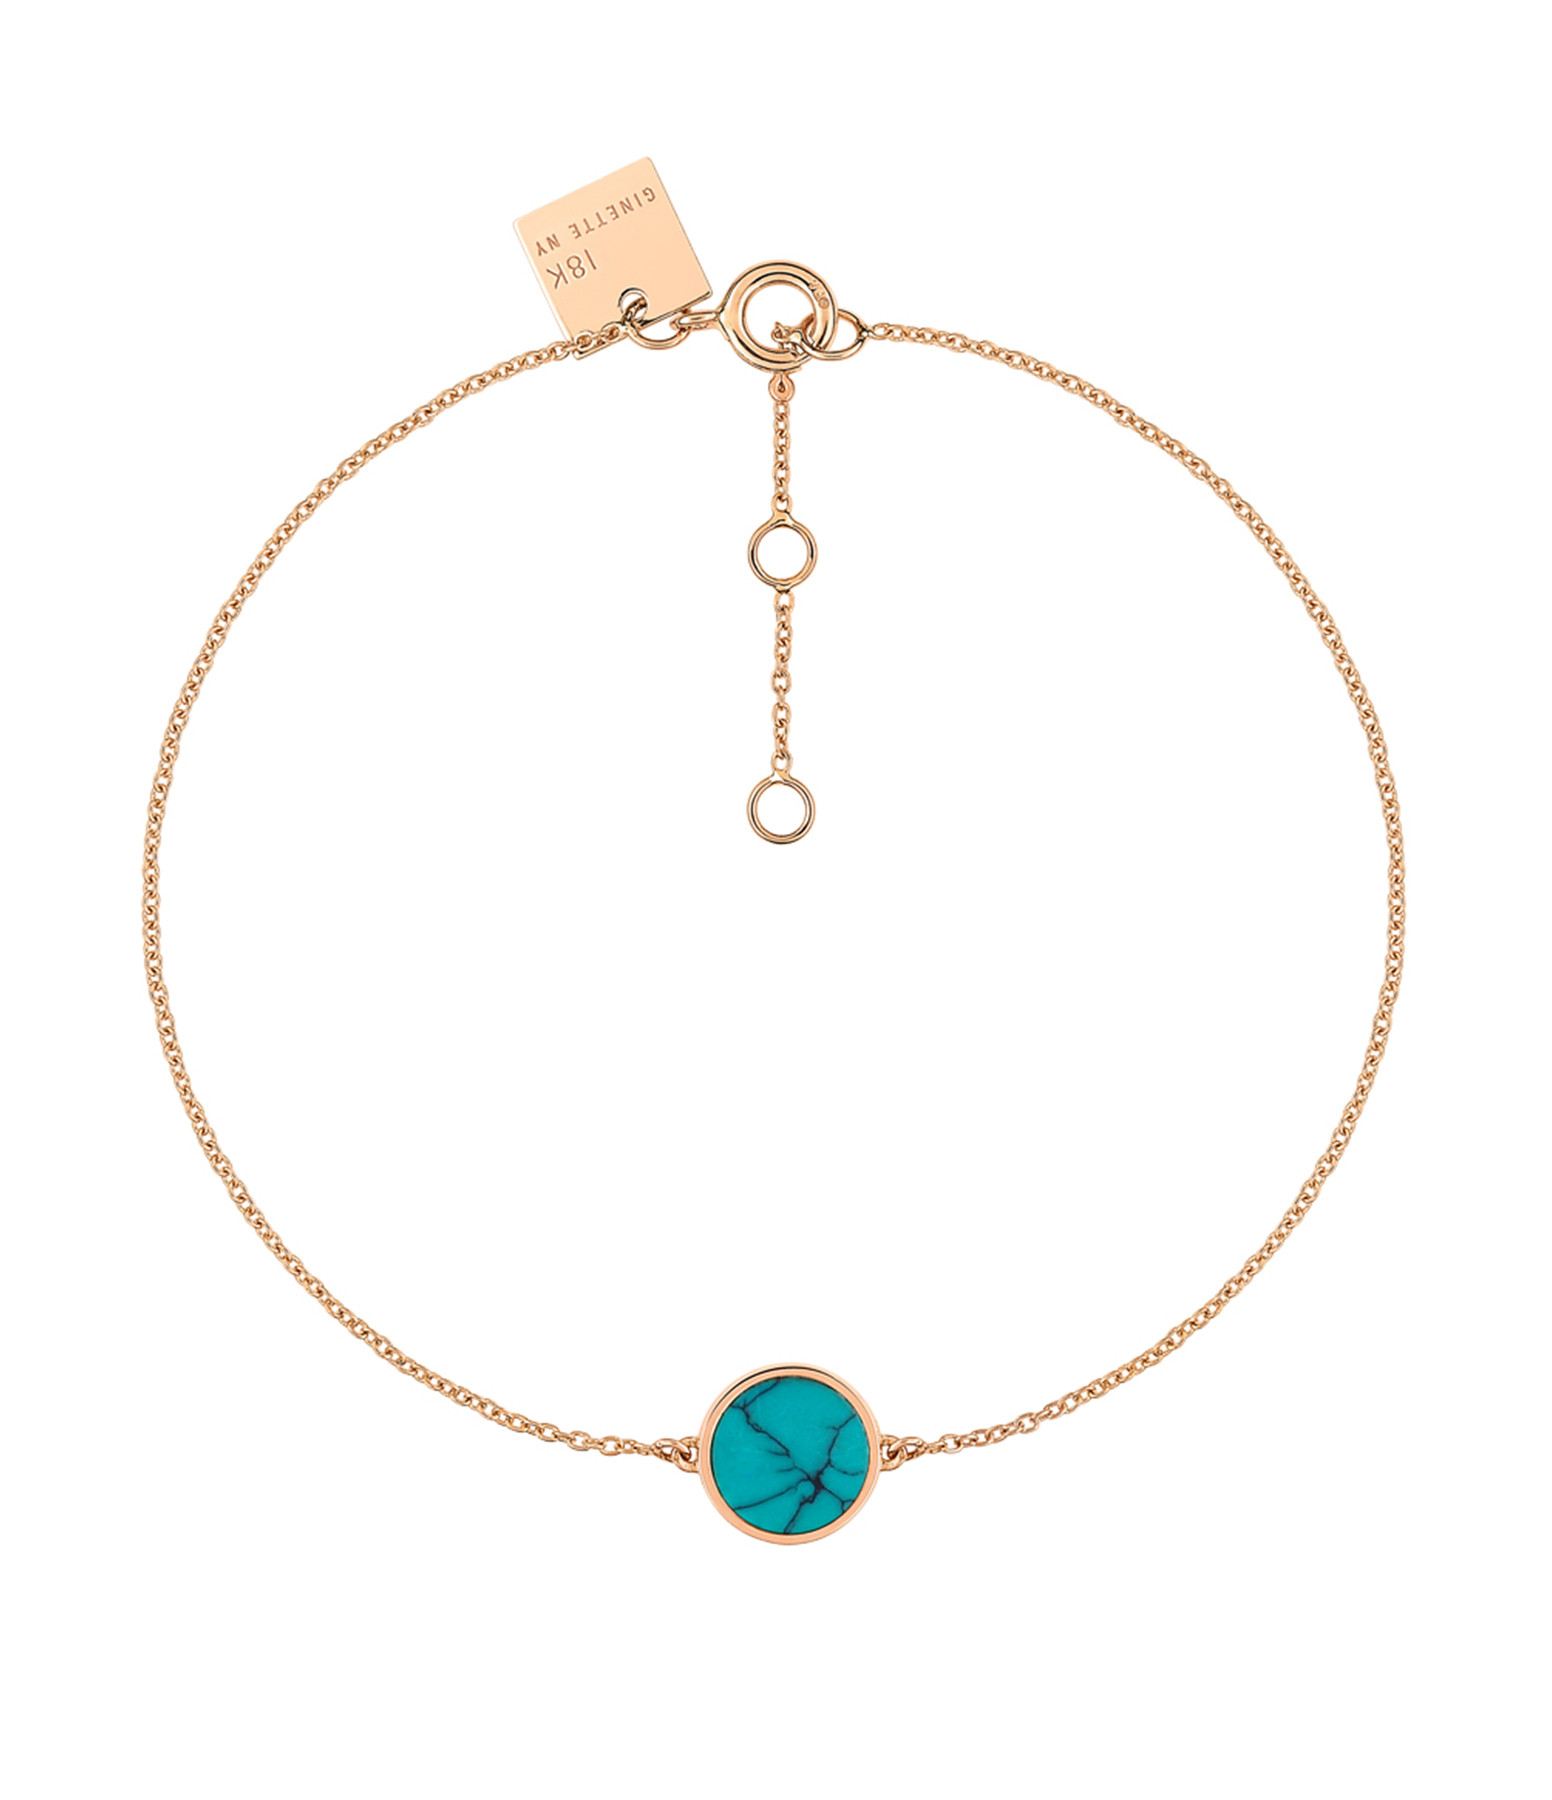 GINETTE NY - Bracelet Ever Mini Disc Or Rose Turquoise